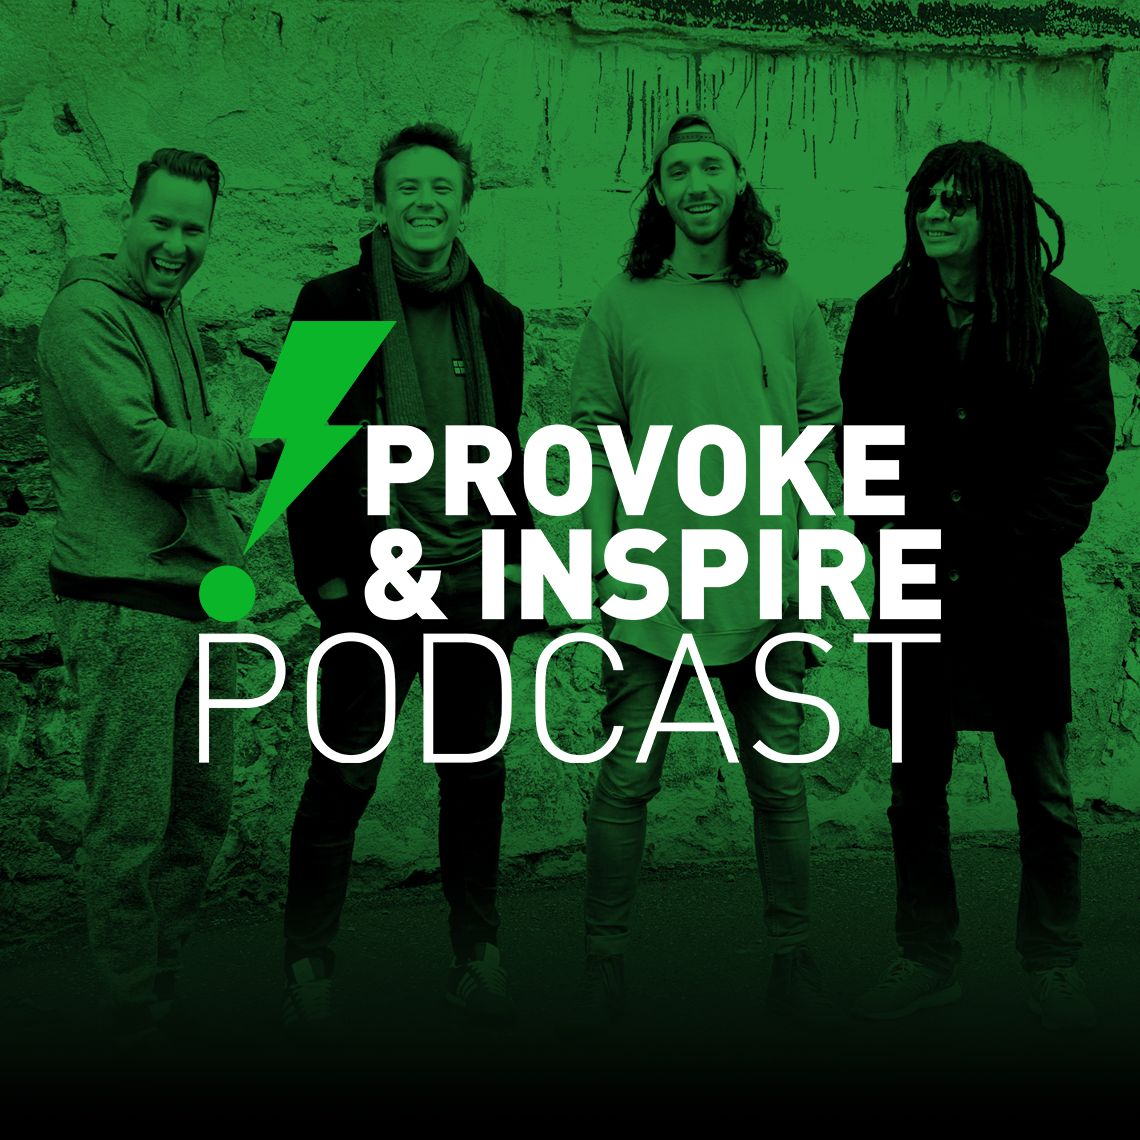 Provoke & Inspire Podcast